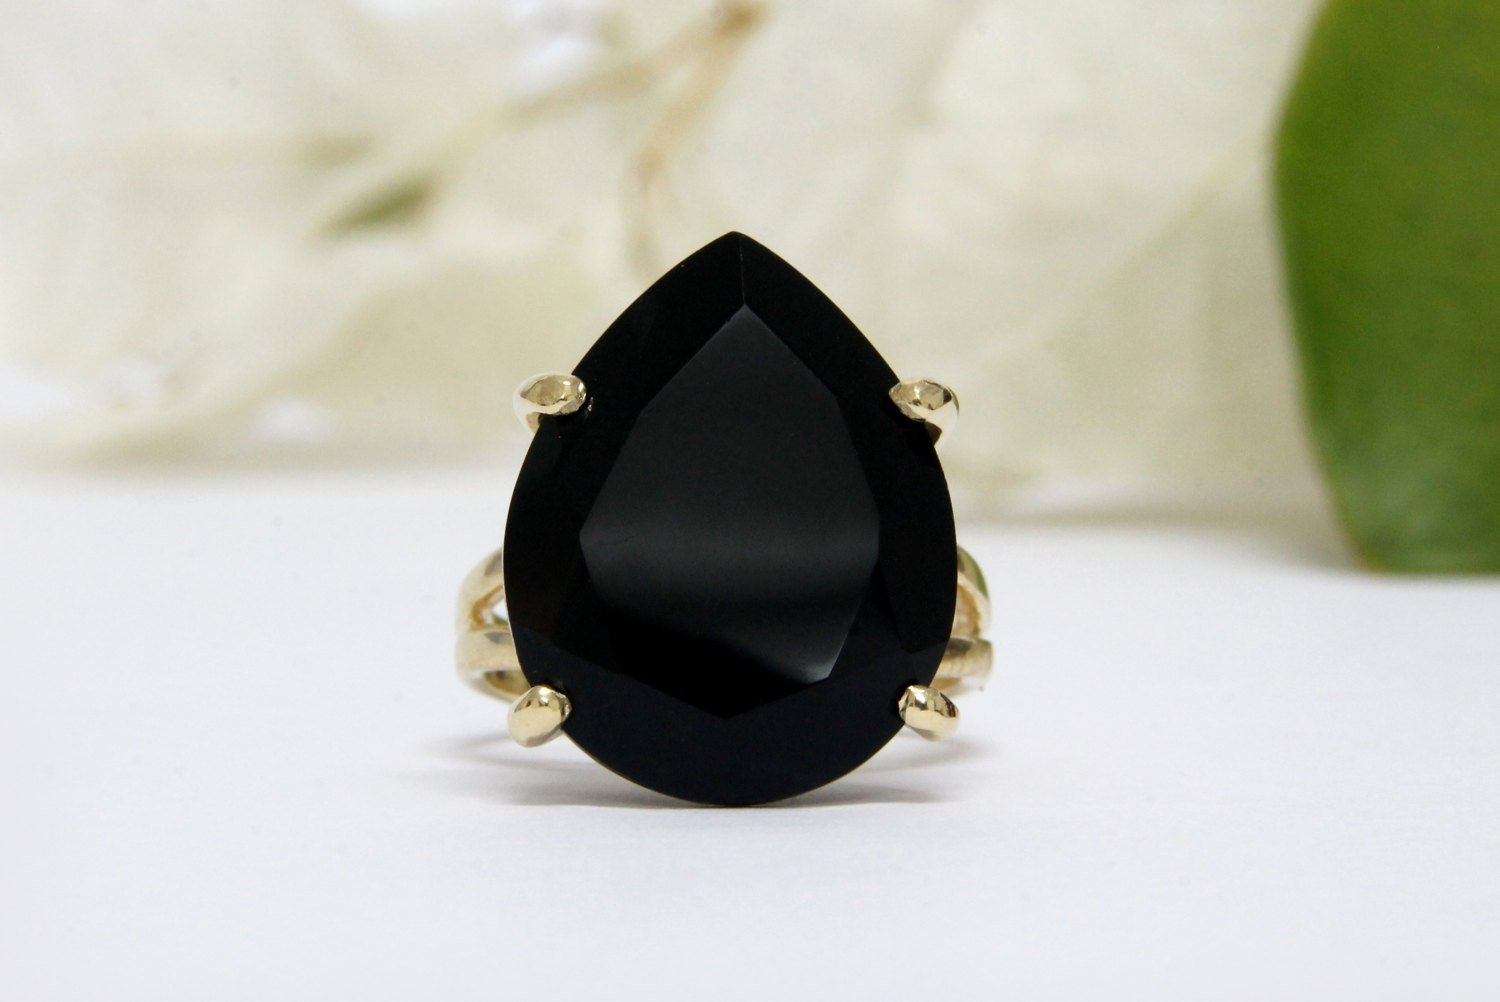 Anemone Jewelry Black Onyx Cocktail Ring - Elegant 20mm/16mm 14K Gold Ring for Ladies - Jewellery for Special Occasions and Daily Use [Handmade]